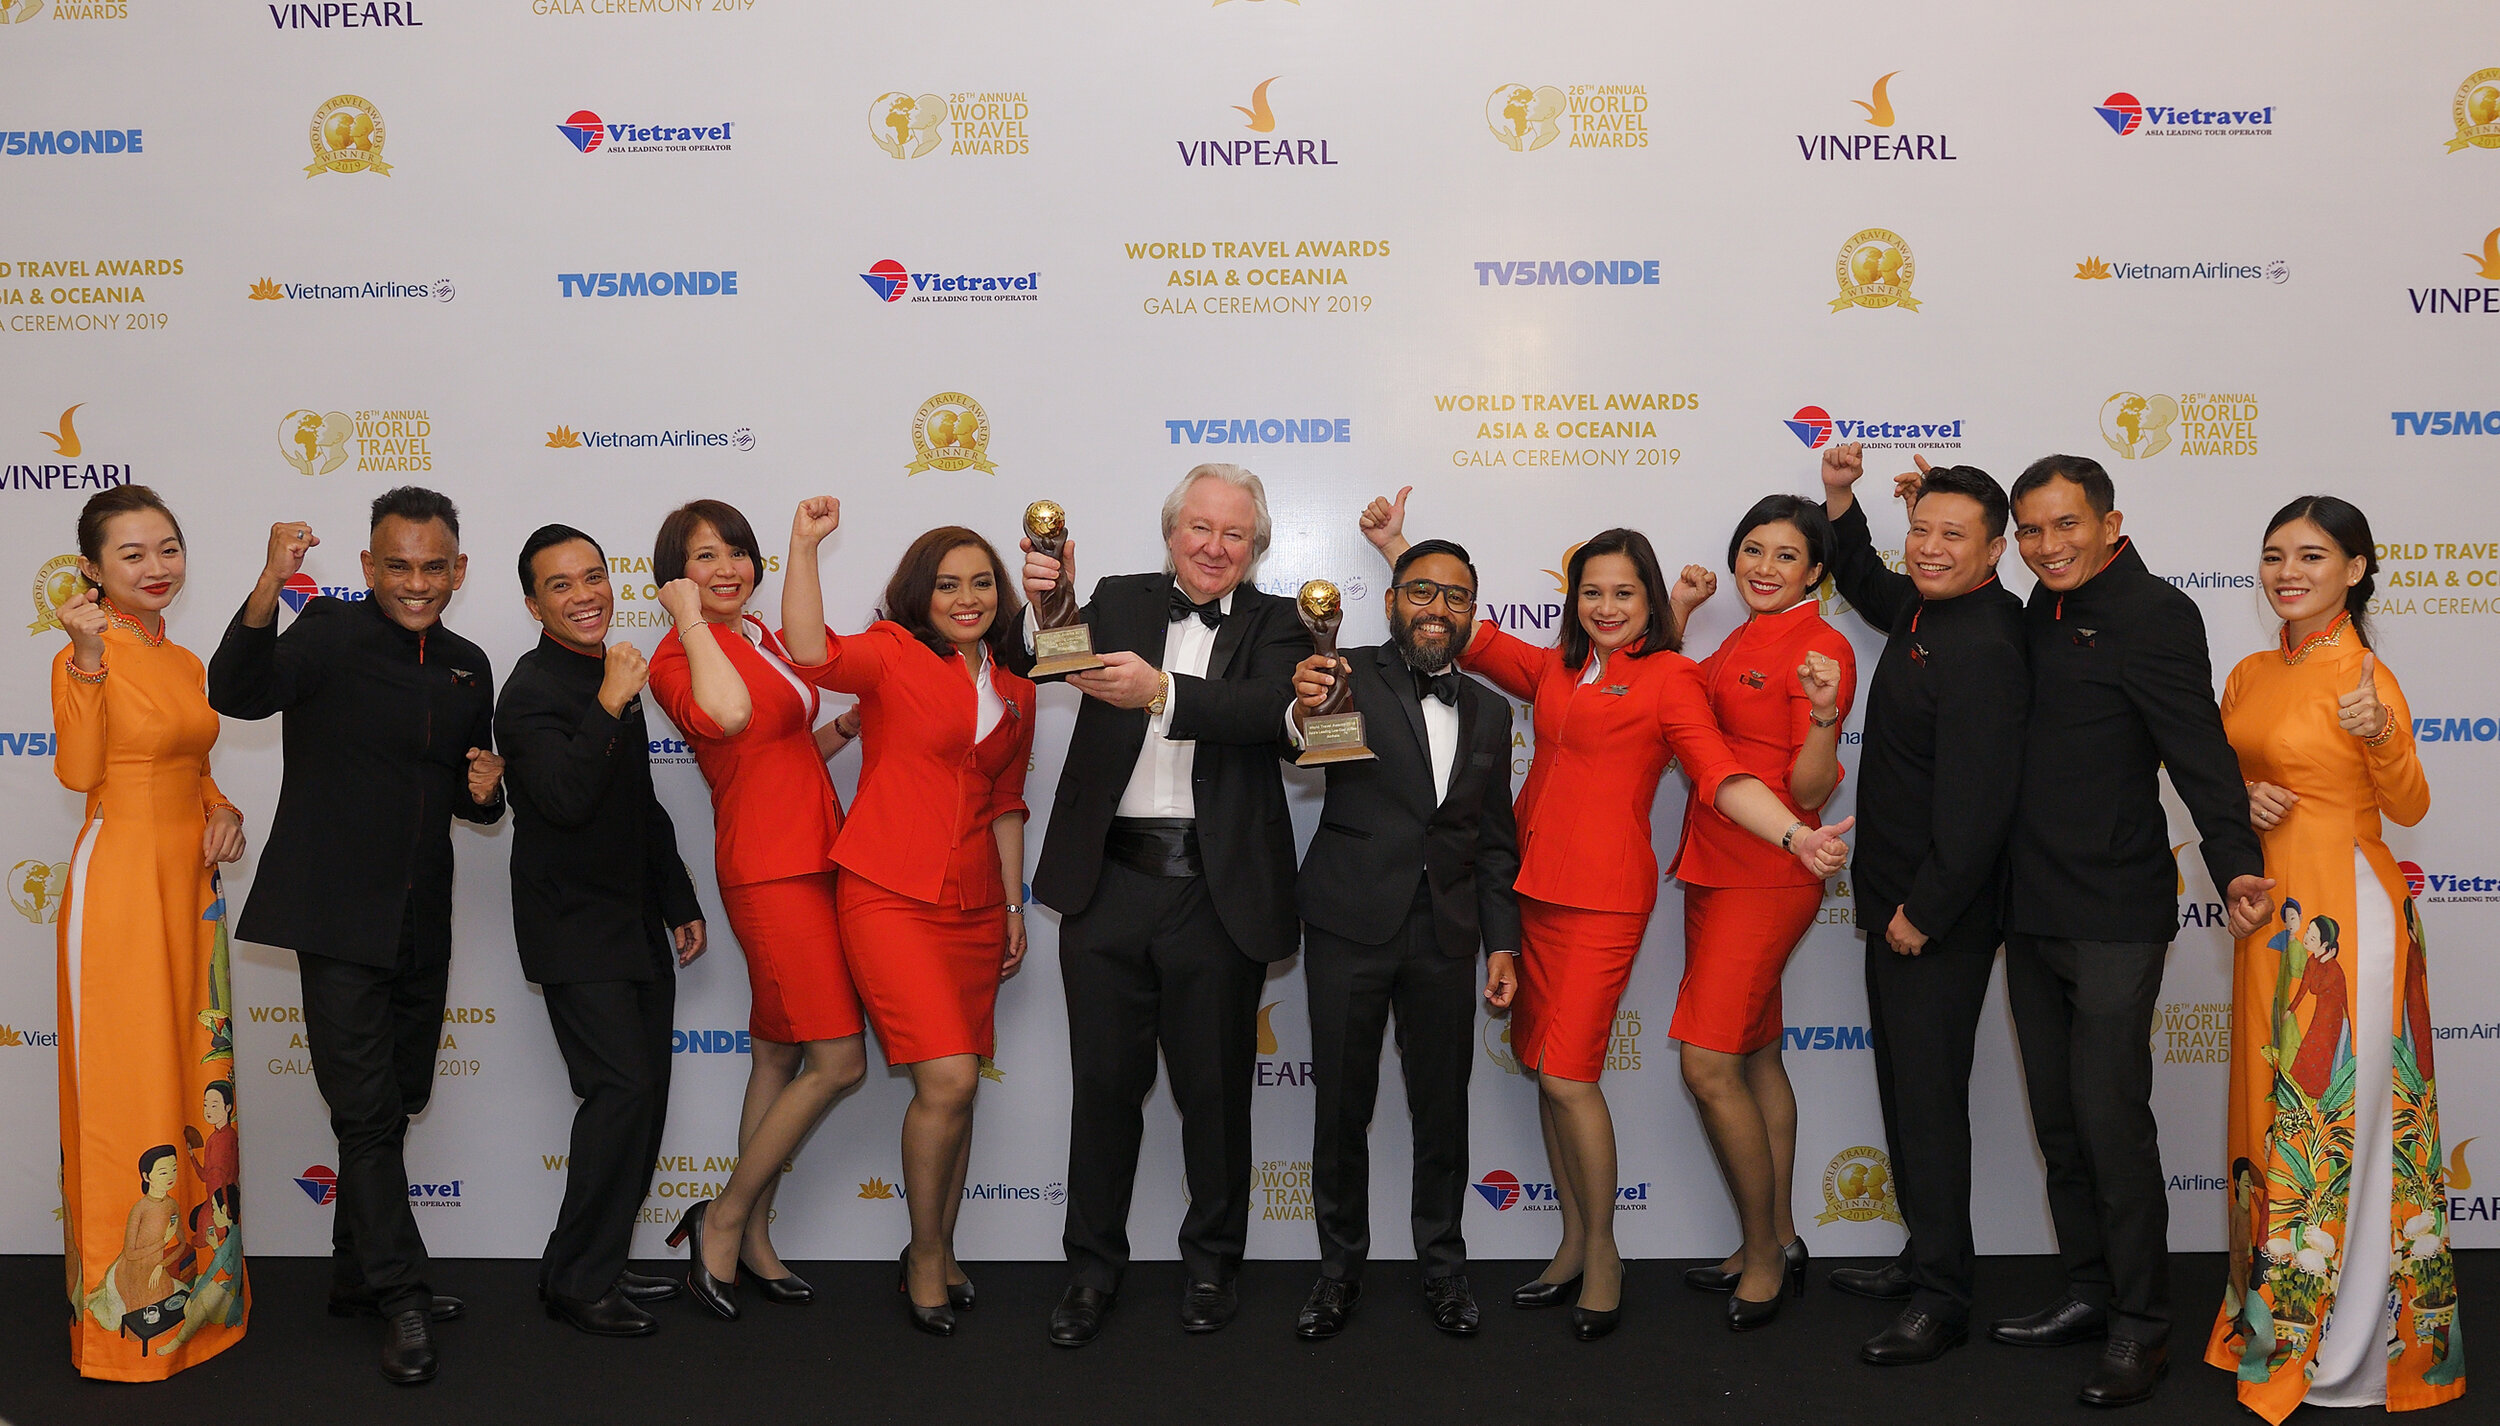 Photo Caption: AirAsia Malaysia CEO Riad Asmat and a group of AirAsia's pioneer cabin crew accepted the Asia's Leading Low-Cost Airline and Asia's Leading Low-Cost Airline Cabin Crew awards from President and Founder of World Travel Awards Graham Cooke (centre left).